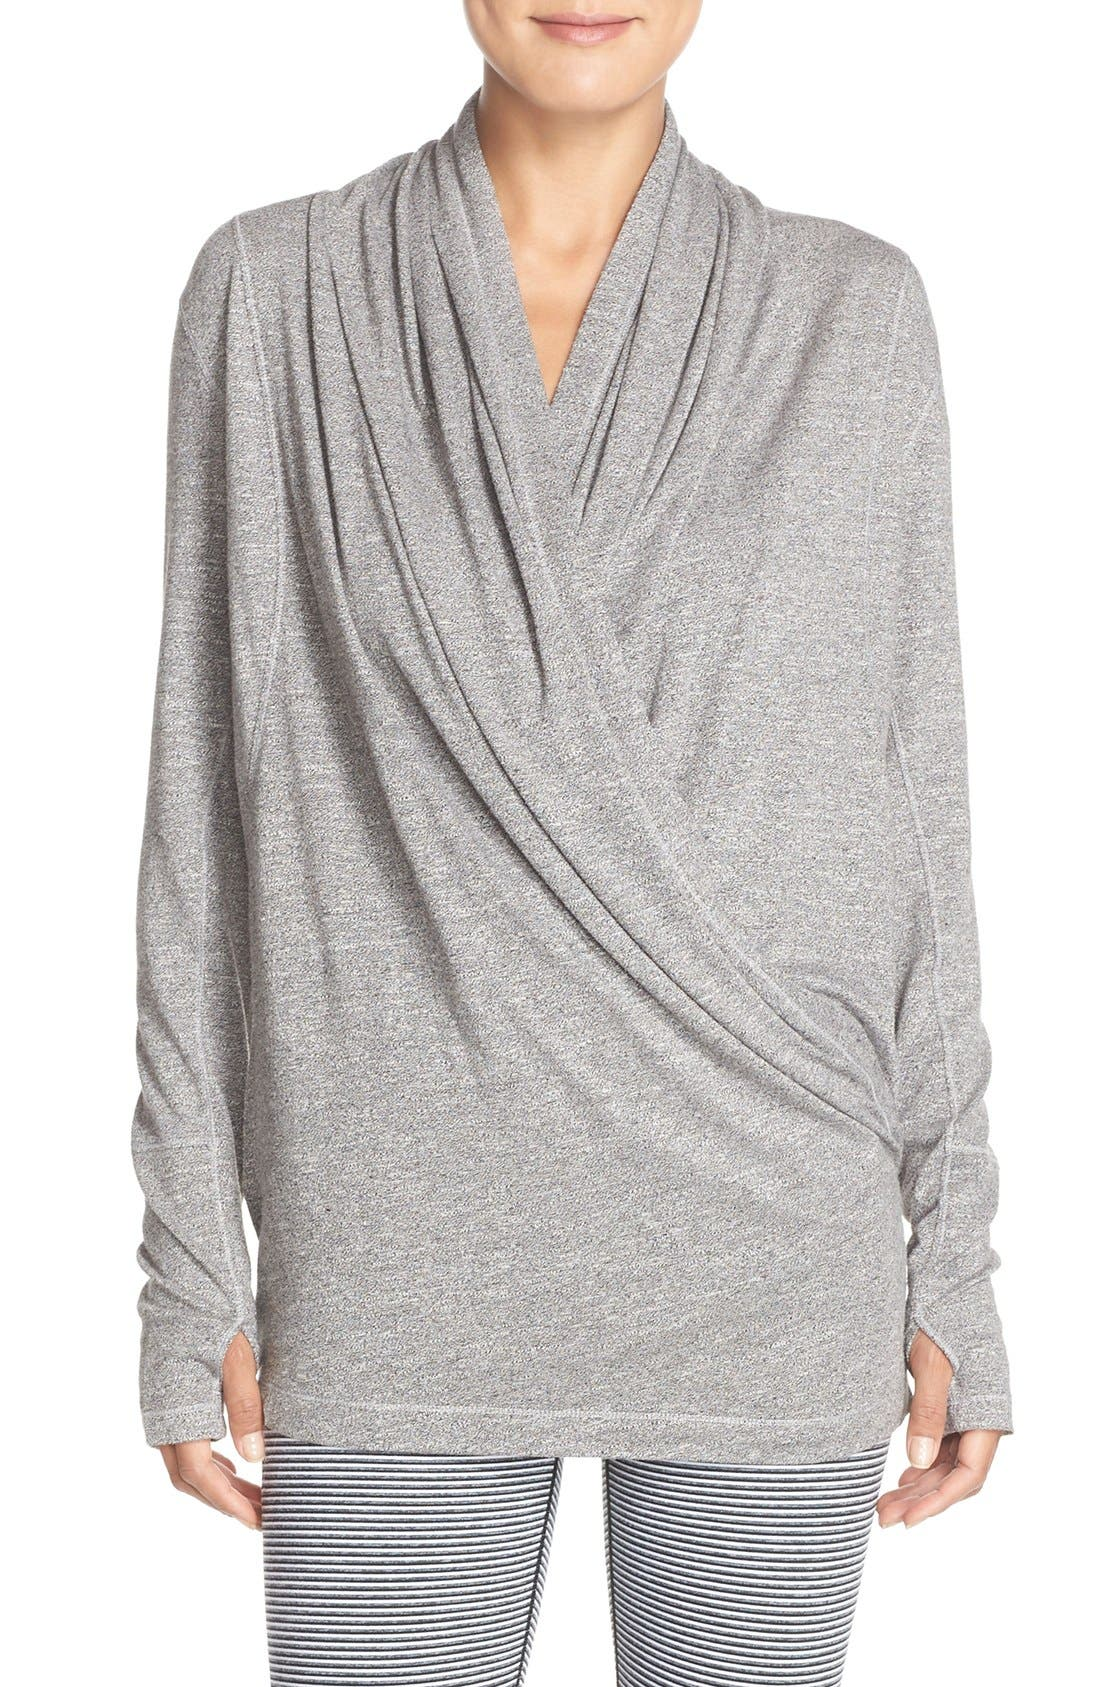 'Enlighten Me' Cardigan,                         Main,                         color, Grey Harem